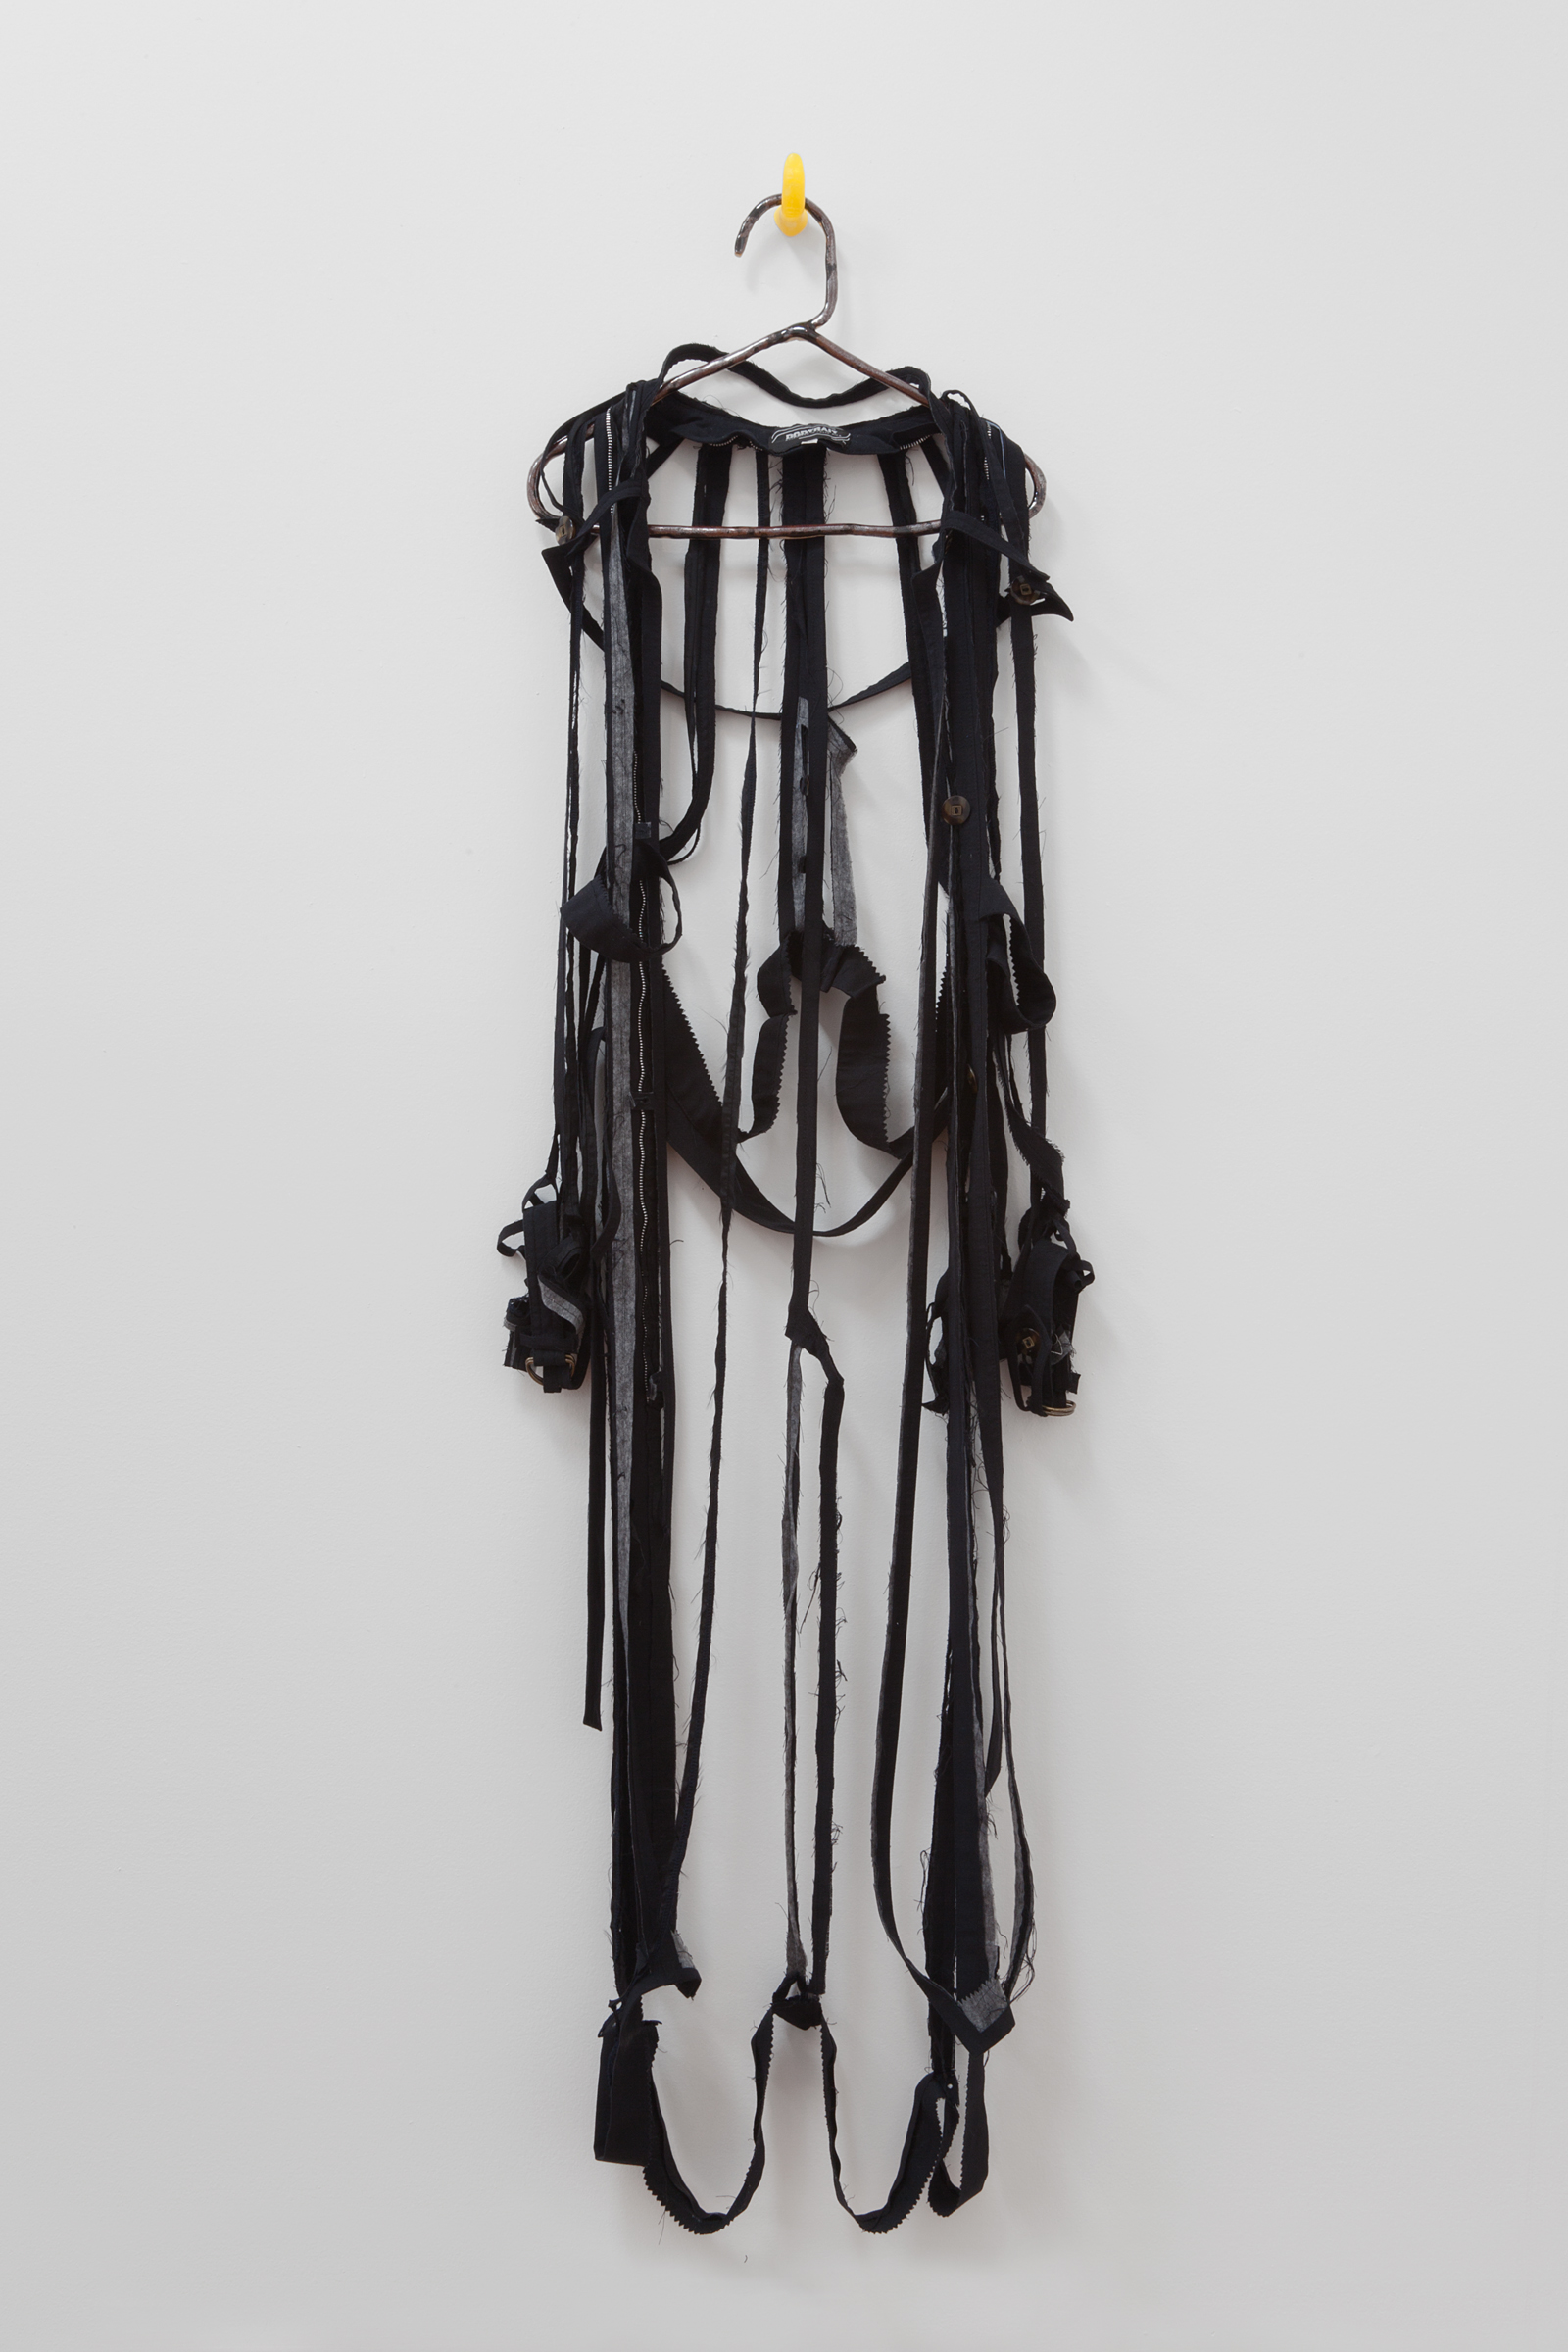 """ANNA SEW HOY   black/noire , fired stoneware, trench coat and resin finger hook, 62.5"""" x 16.5"""" x 4"""", 2012"""